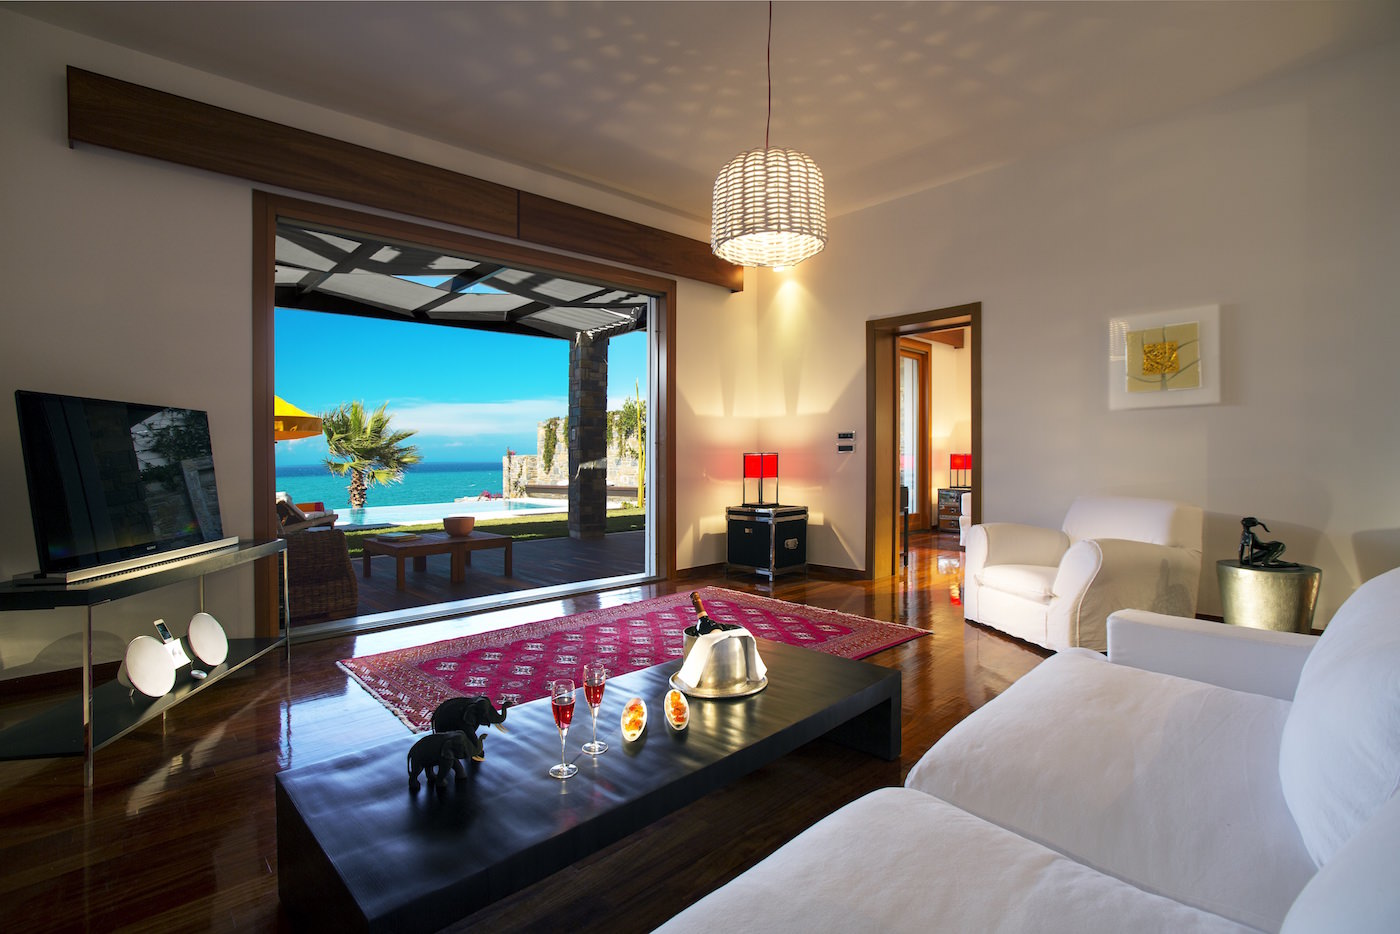 Porto Zante Greece Luxury Grand Presidential Spa Villas with private pool and private beach